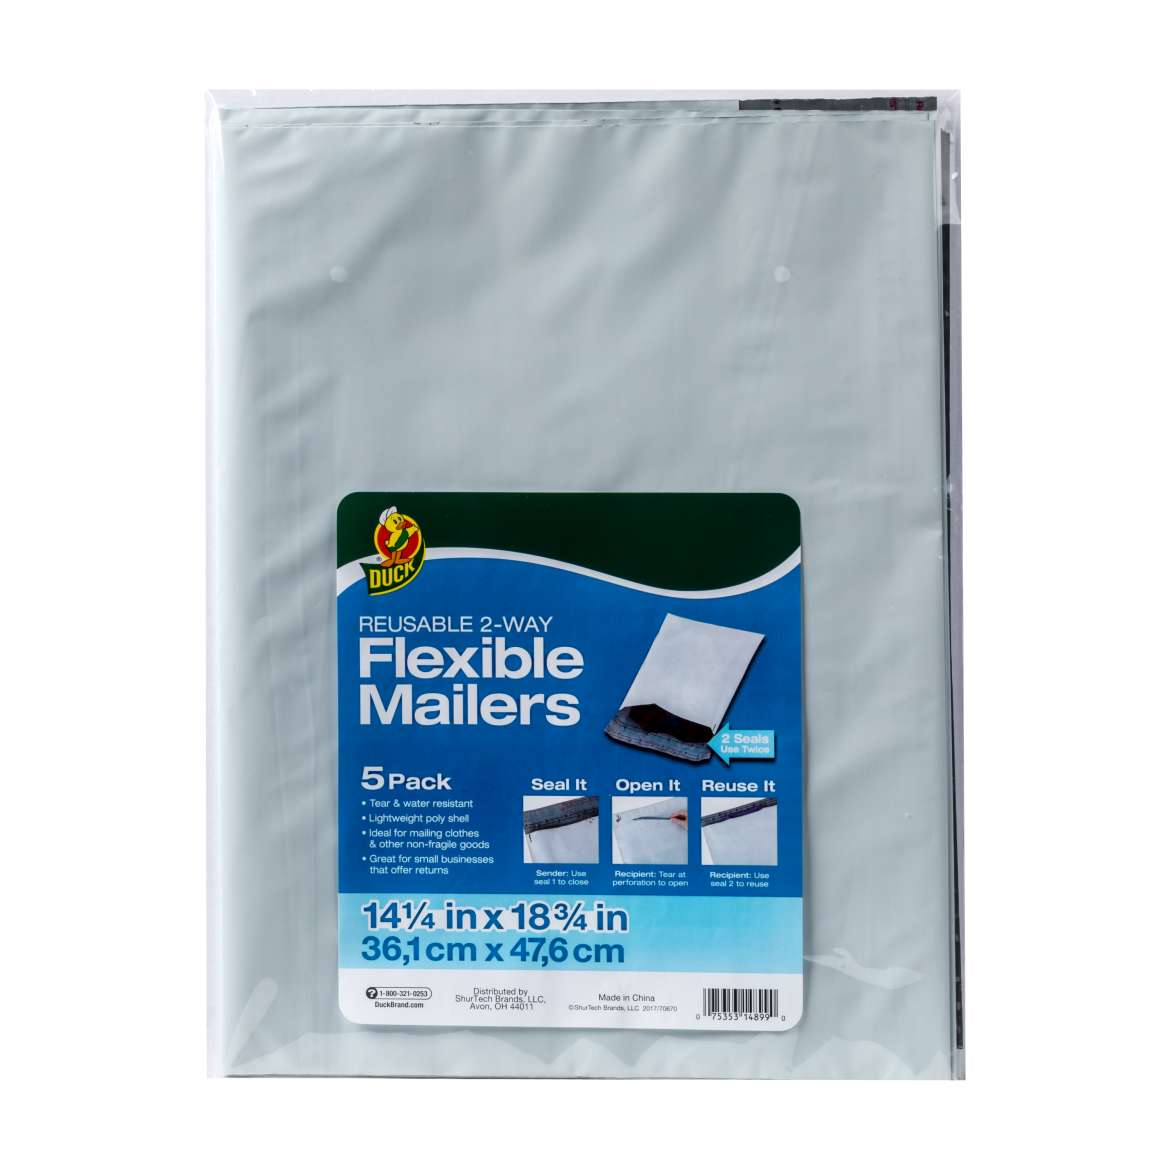 Duck® Brand Reusable 2-Way Flexible Mailers Image